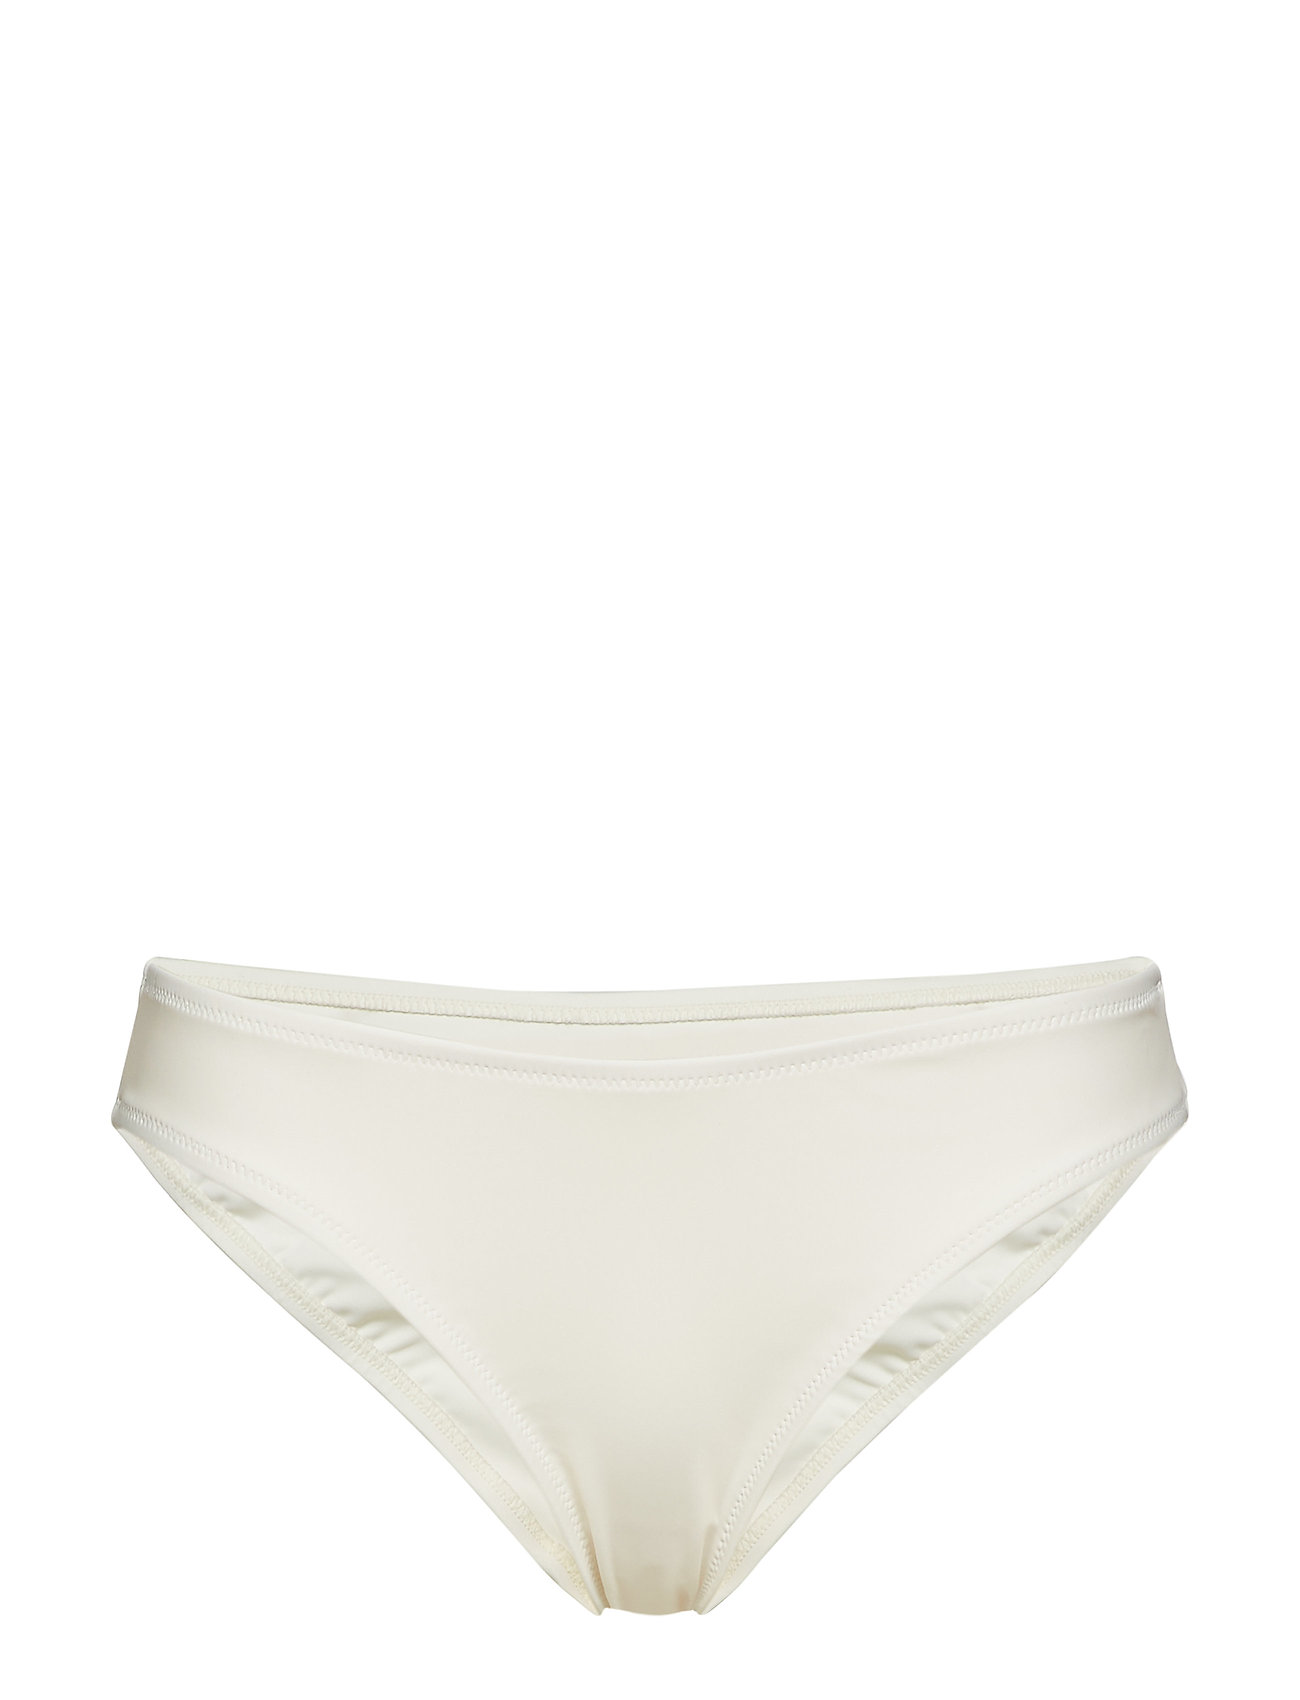 Filippa K Soft Sport Classic Shiny Brief - CREAM